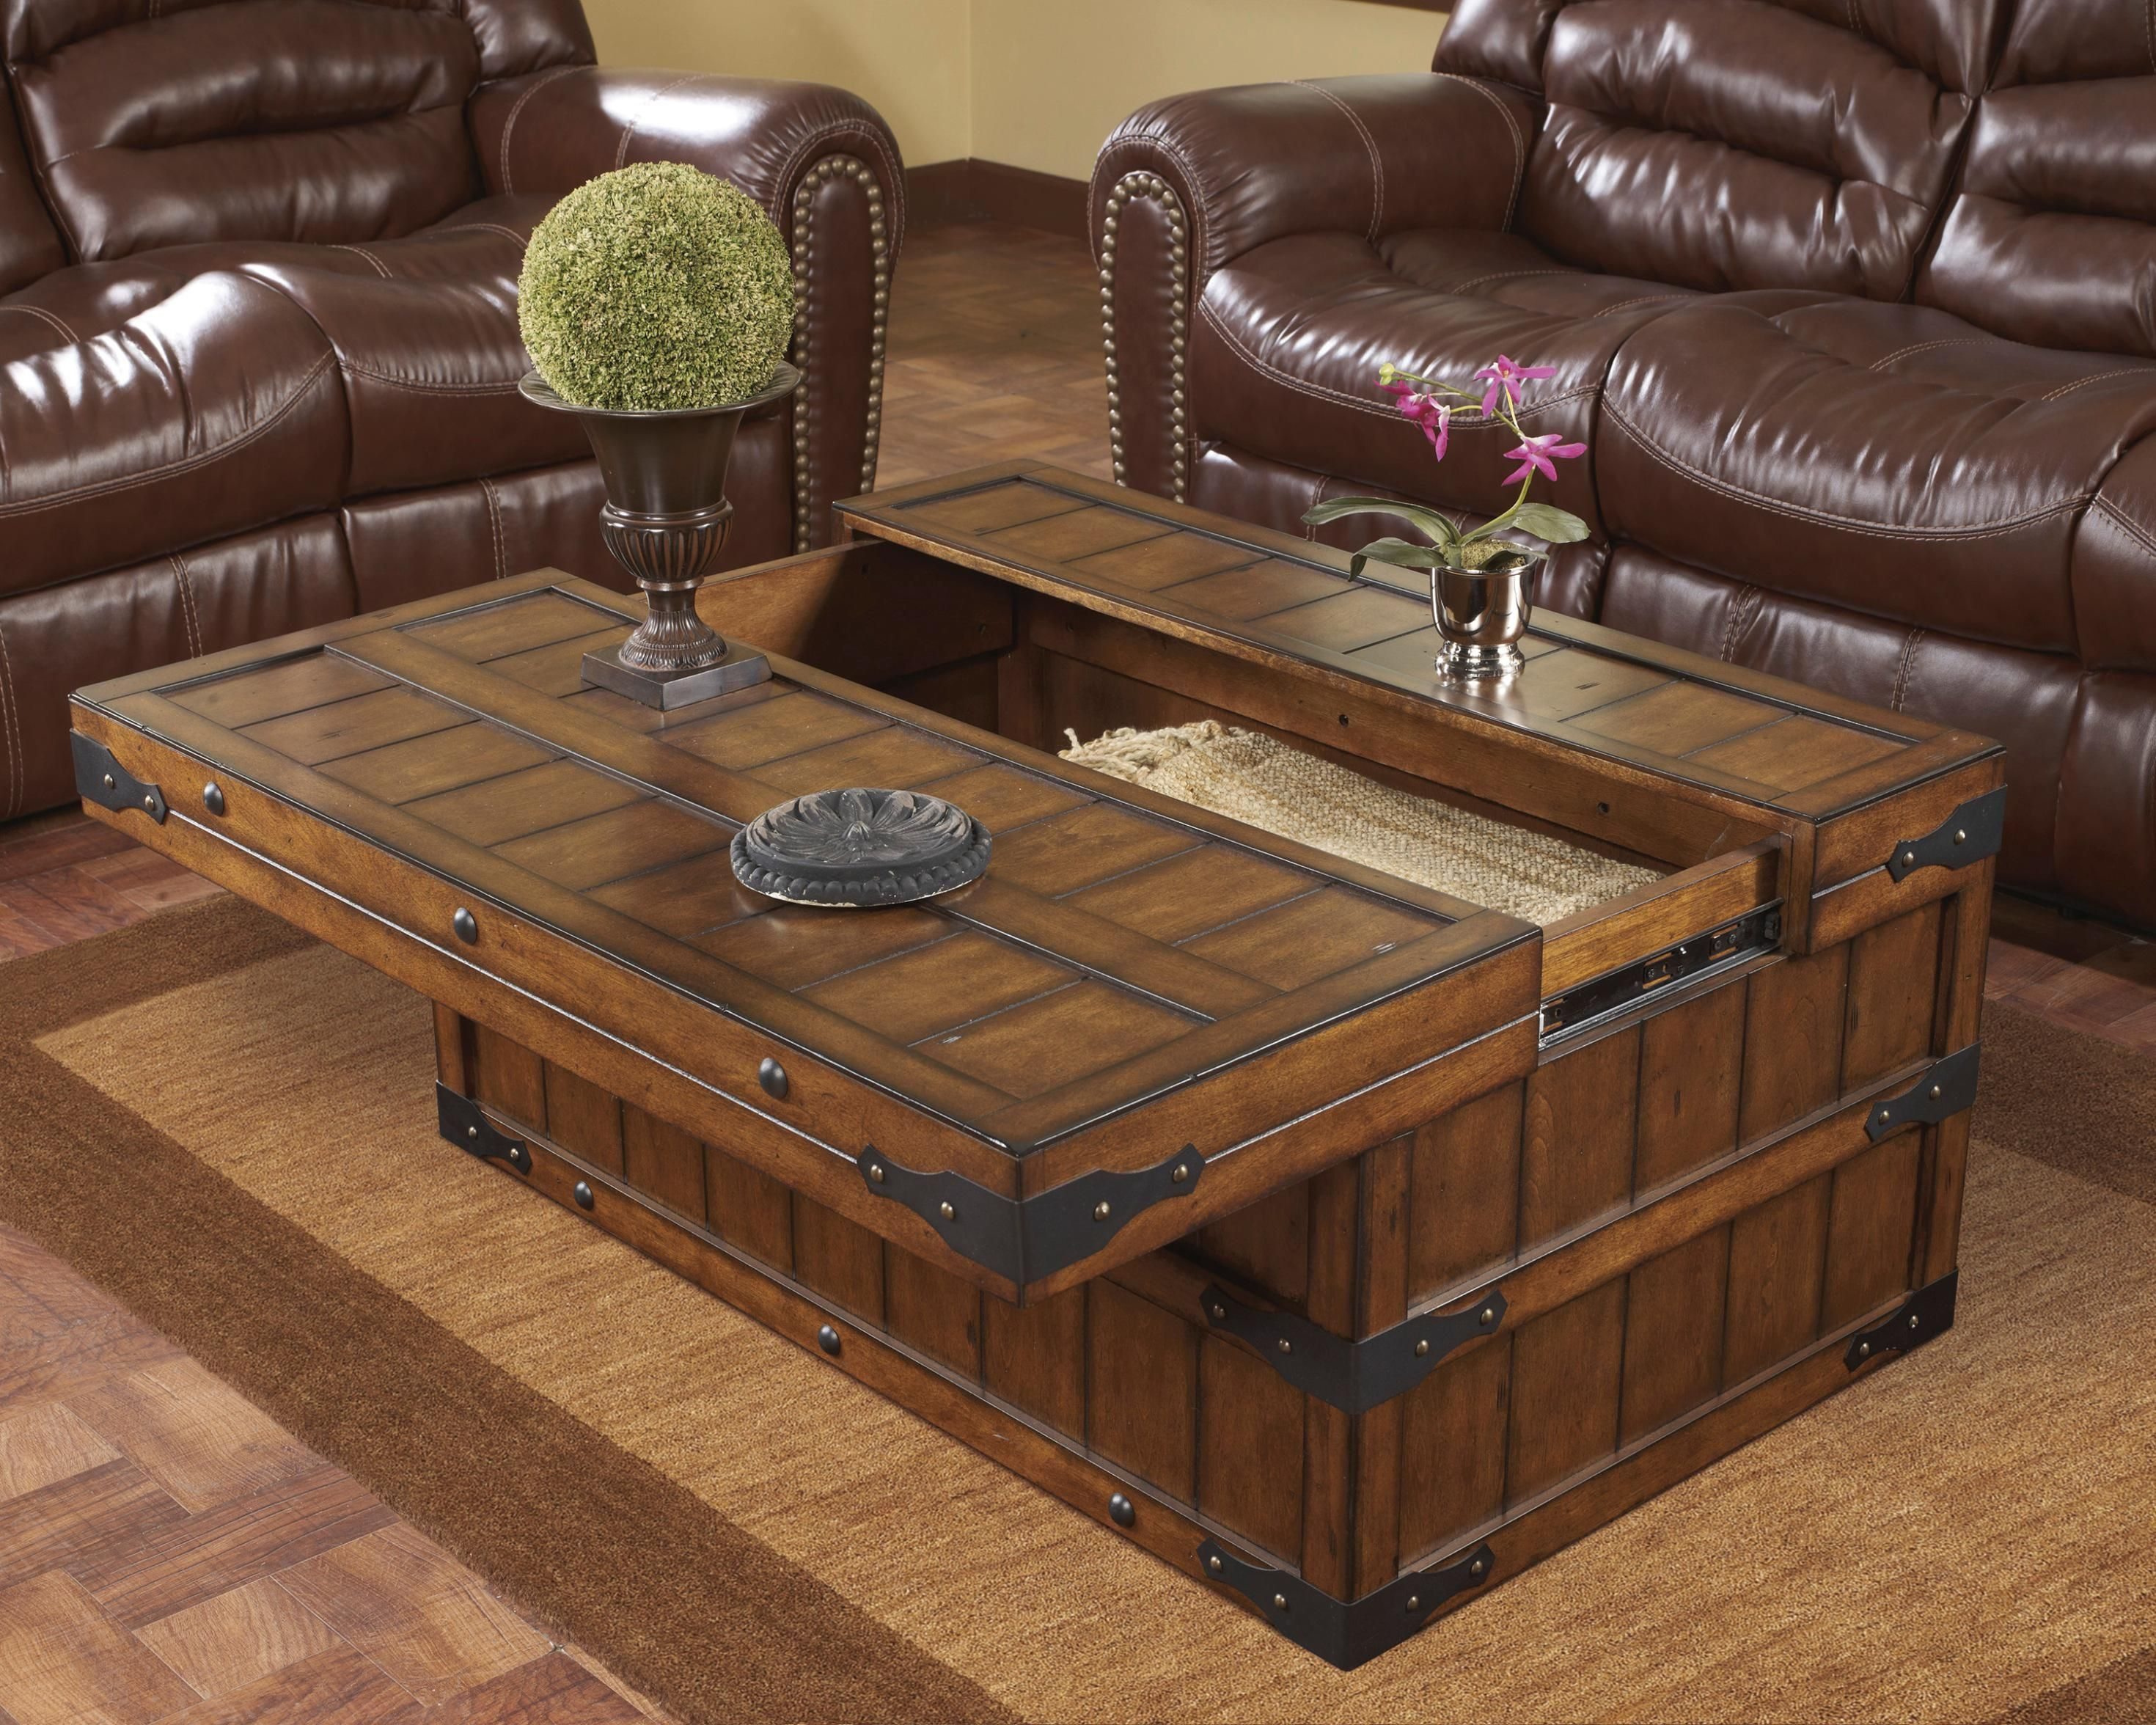 Wine Storage Trunk Coffee Table Modern Coffee Table Functional Chest Coffee Table Wood Coffee Table Rustic Coffee Table